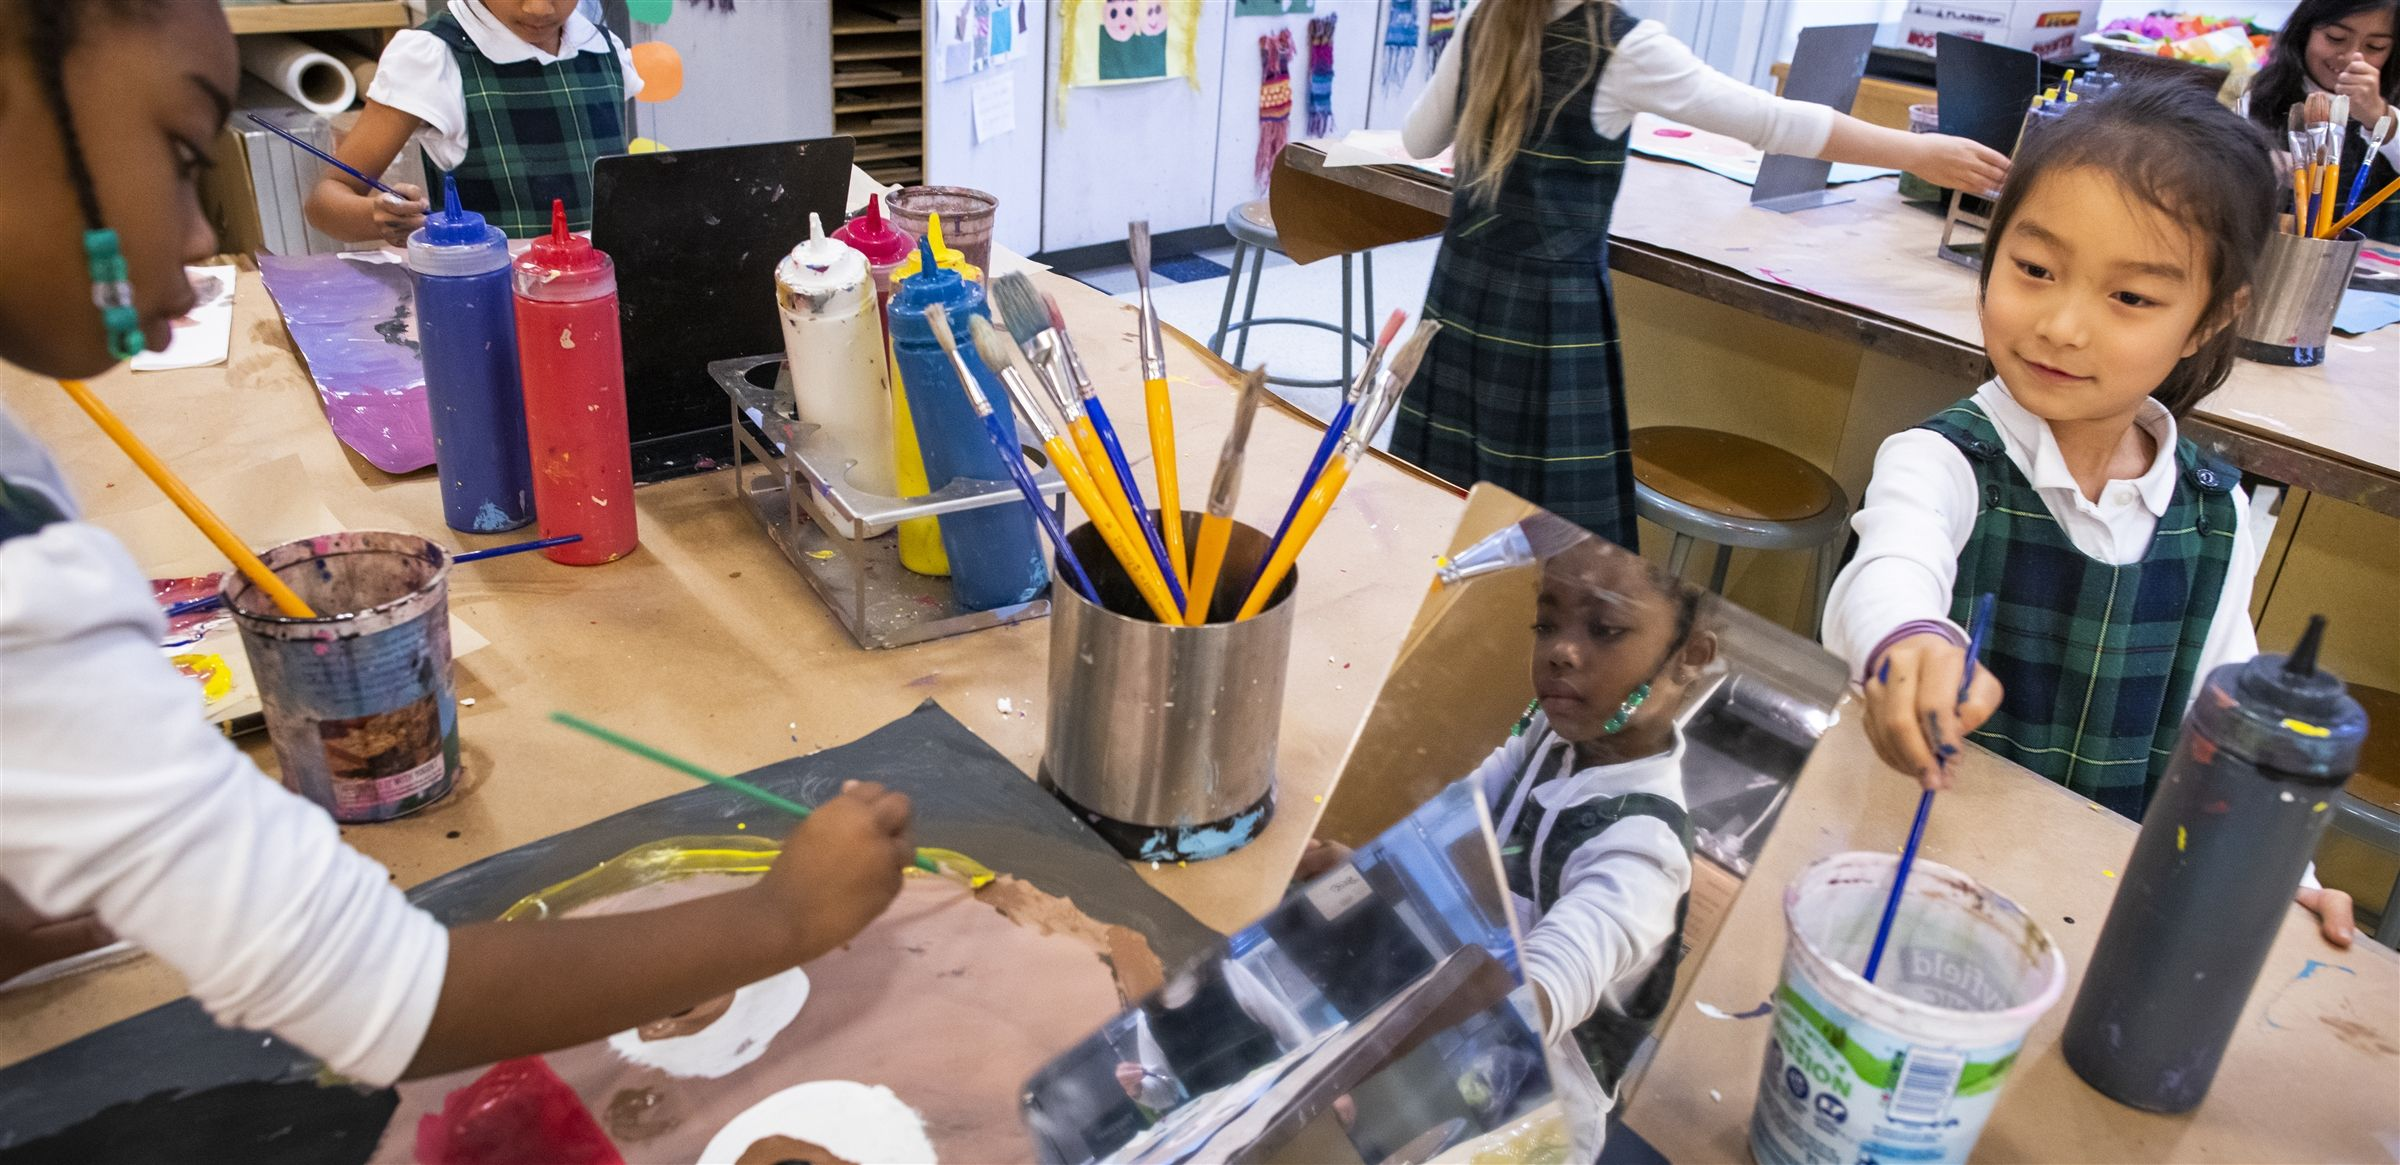 Lower School art students create self-portraits as part of their curriculum about identity.